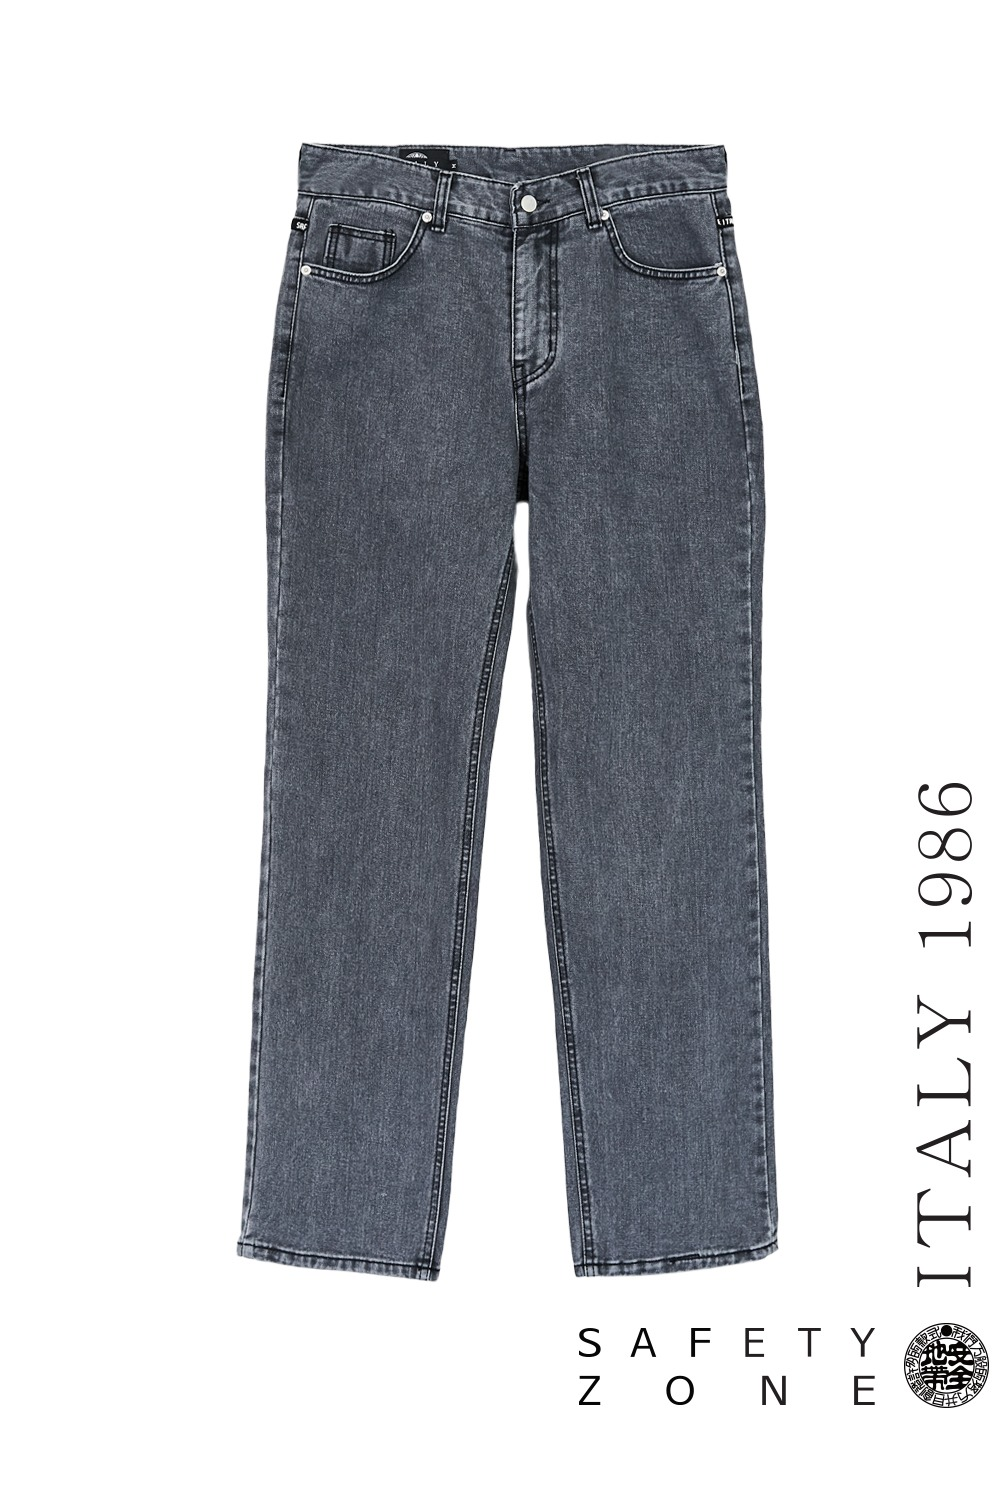 [BL P] DENIM PANTS (GRAY)